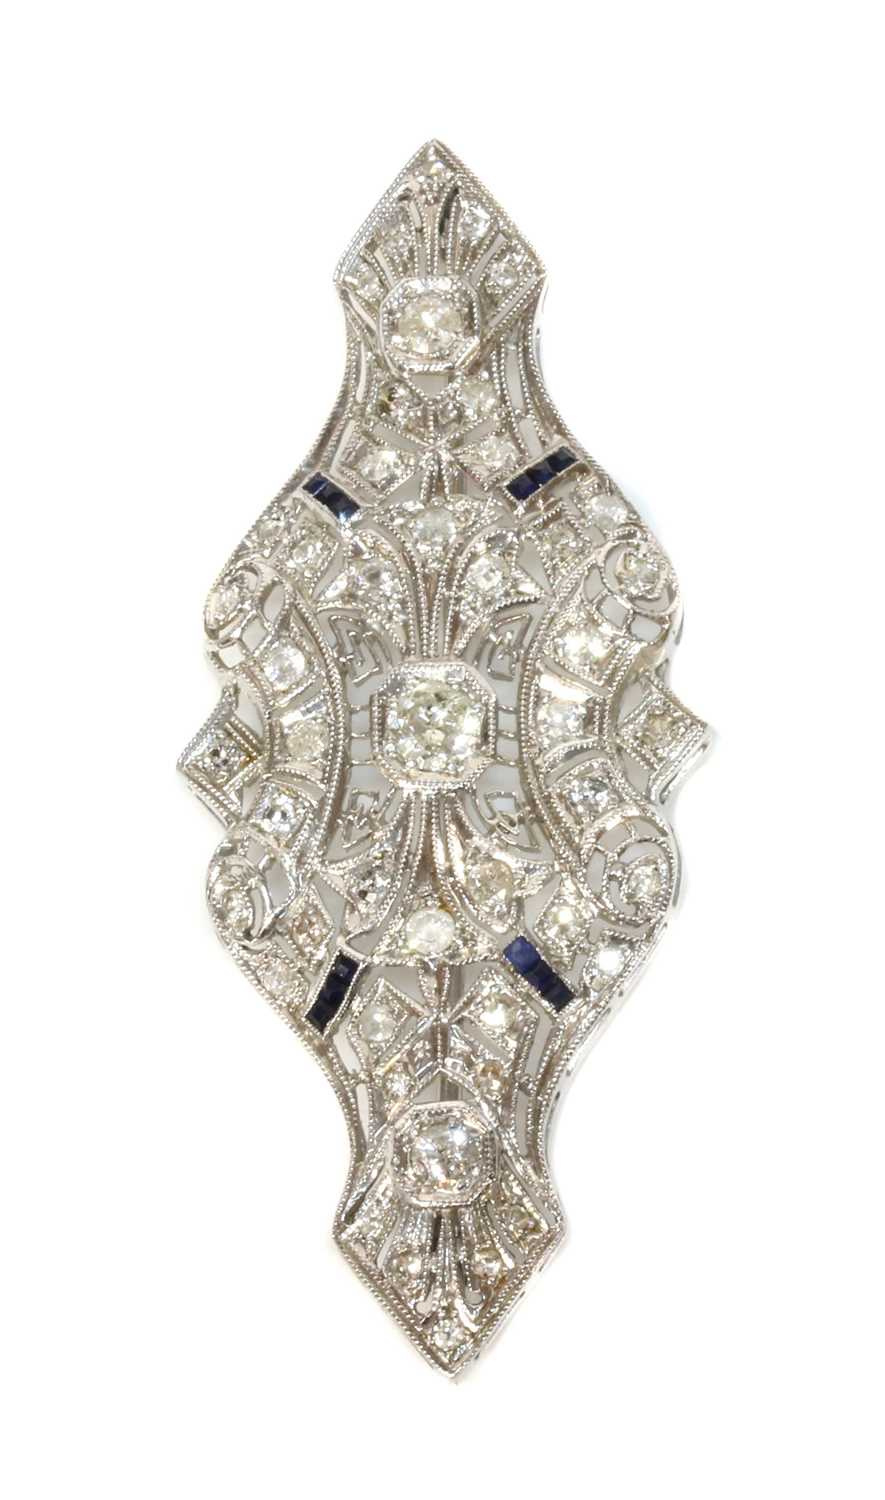 An American Art Deco style diamond and sapphire plaque brooch/pendant, - Image 2 of 2